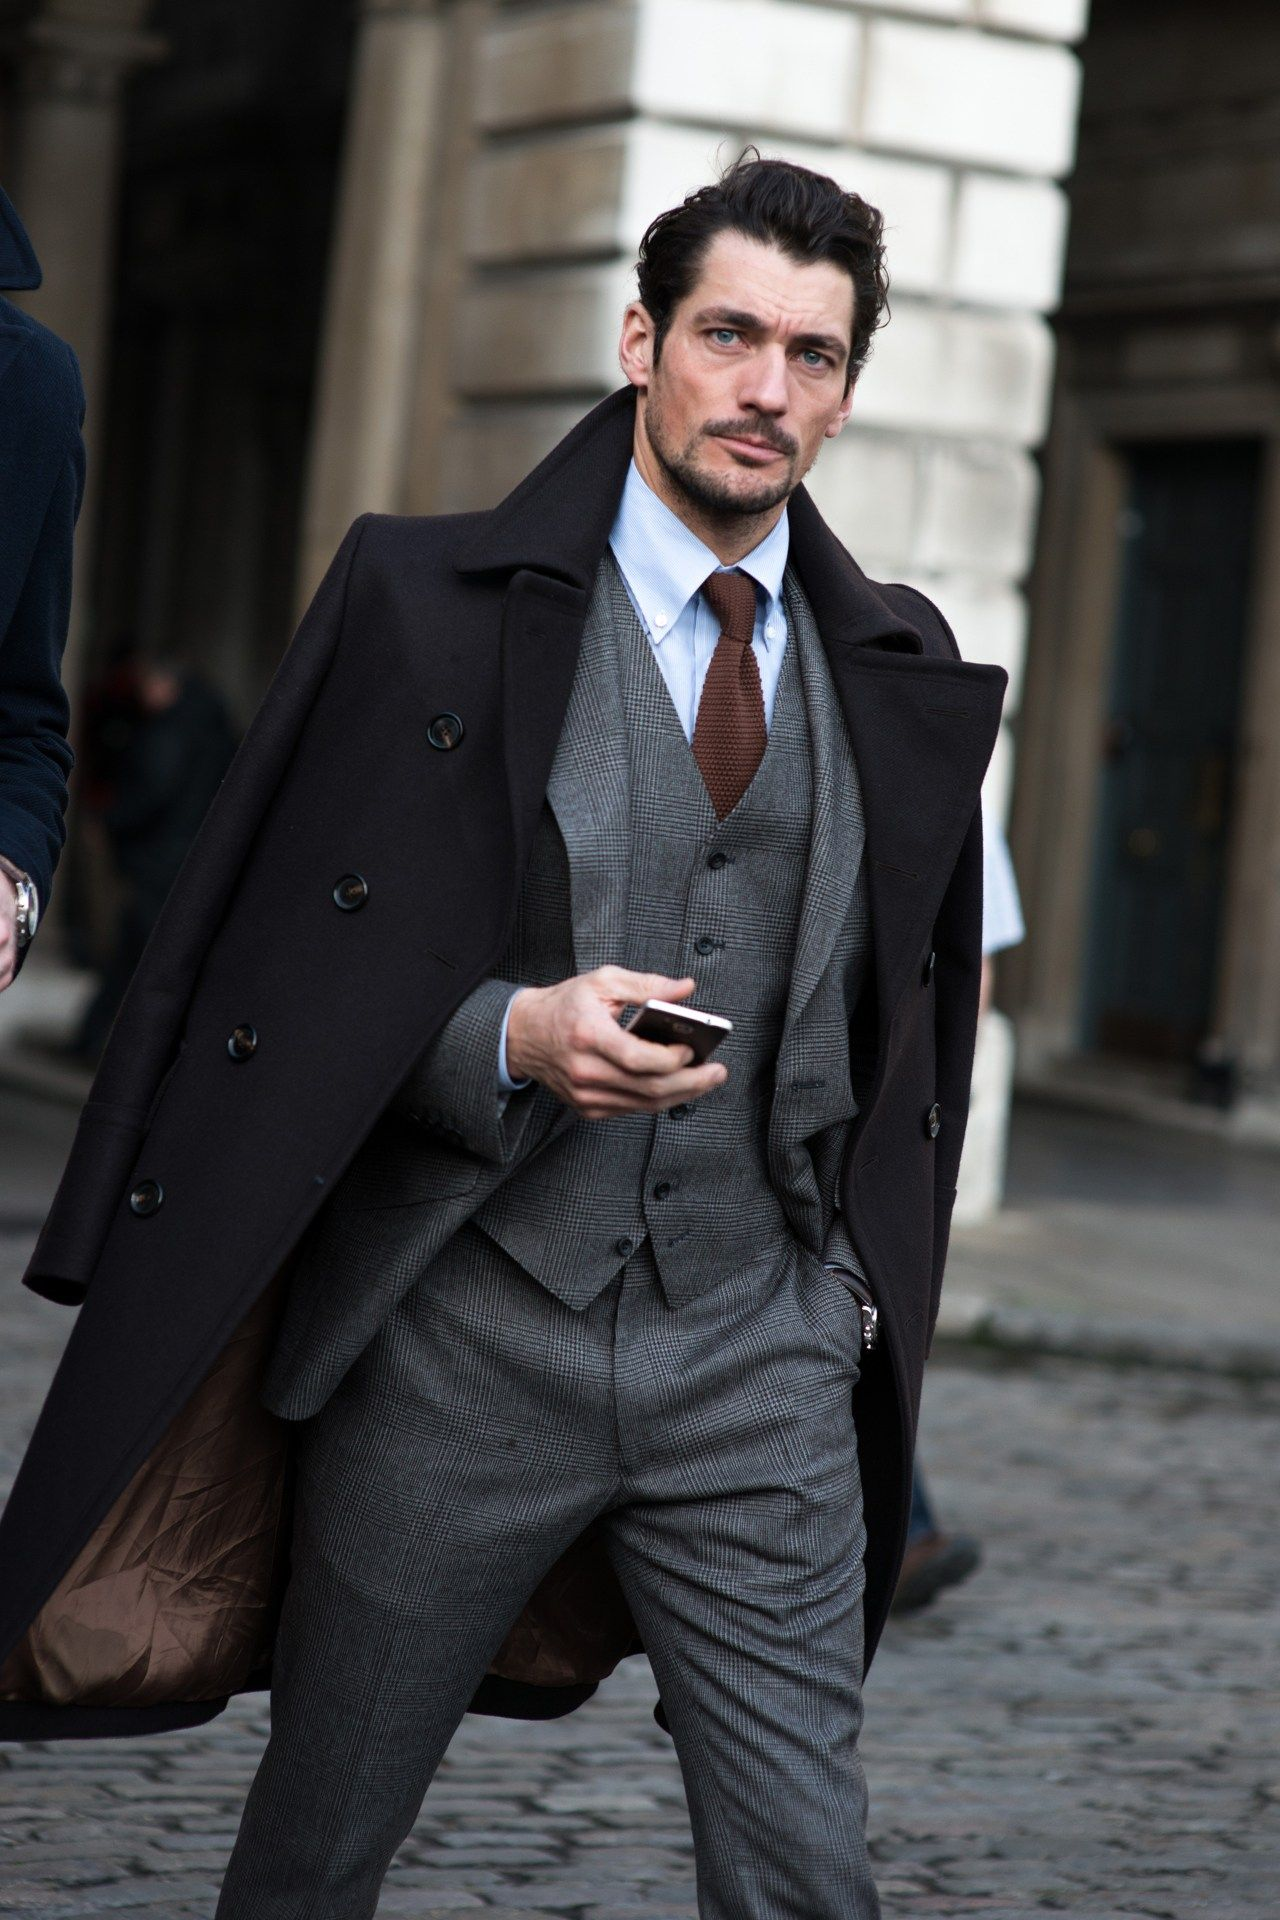 Men's grey flannel trousers  Mr Gandy as impeccable as ever grey flannel  pieces nice to see